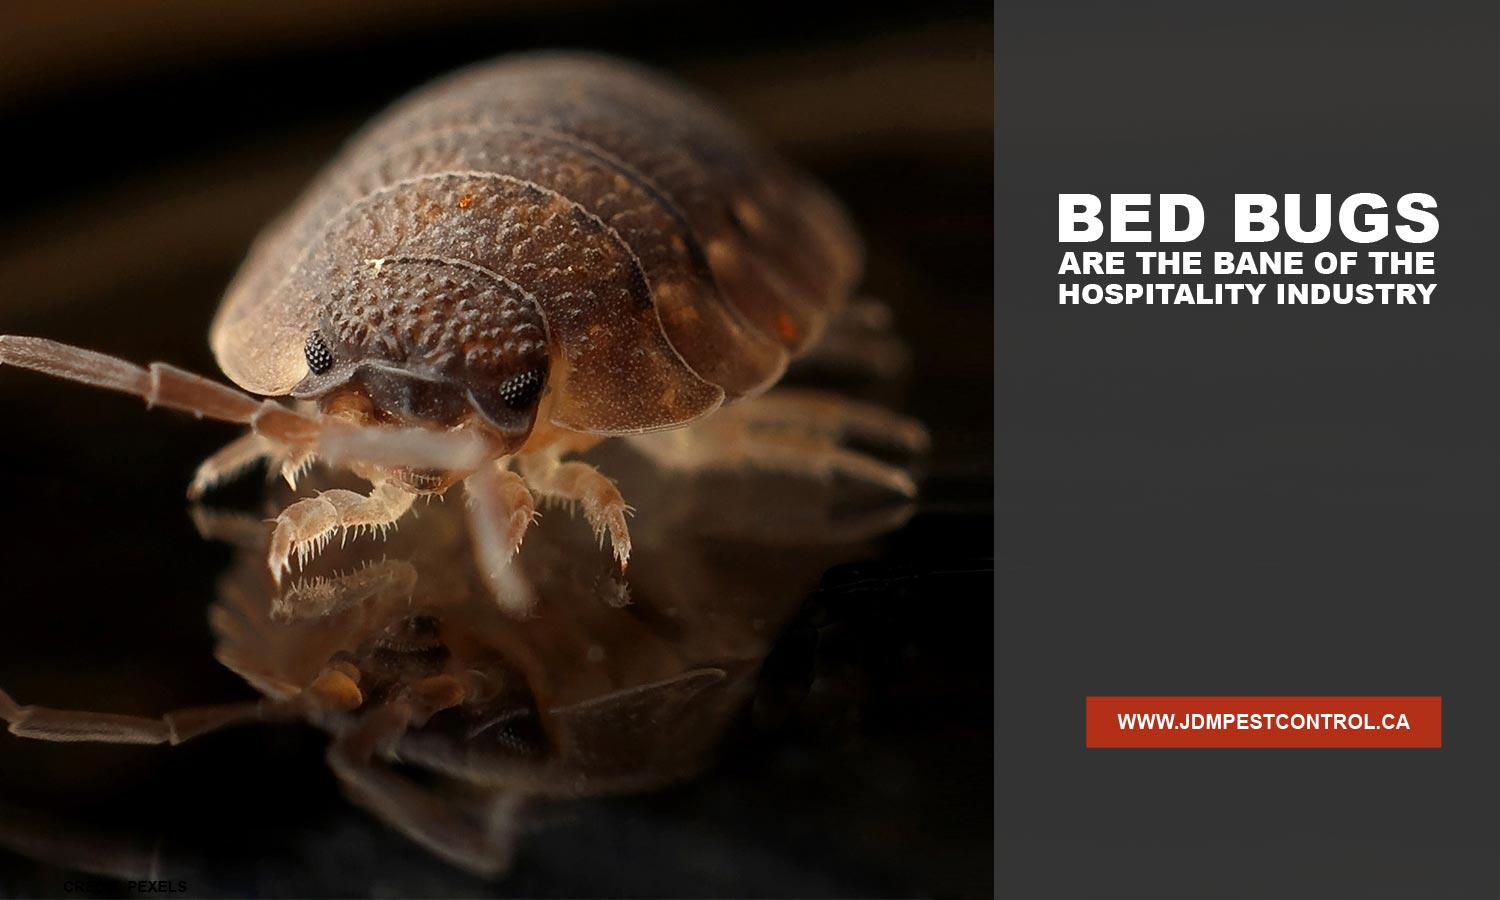 Bed bugs are the bane of the hospitality industry